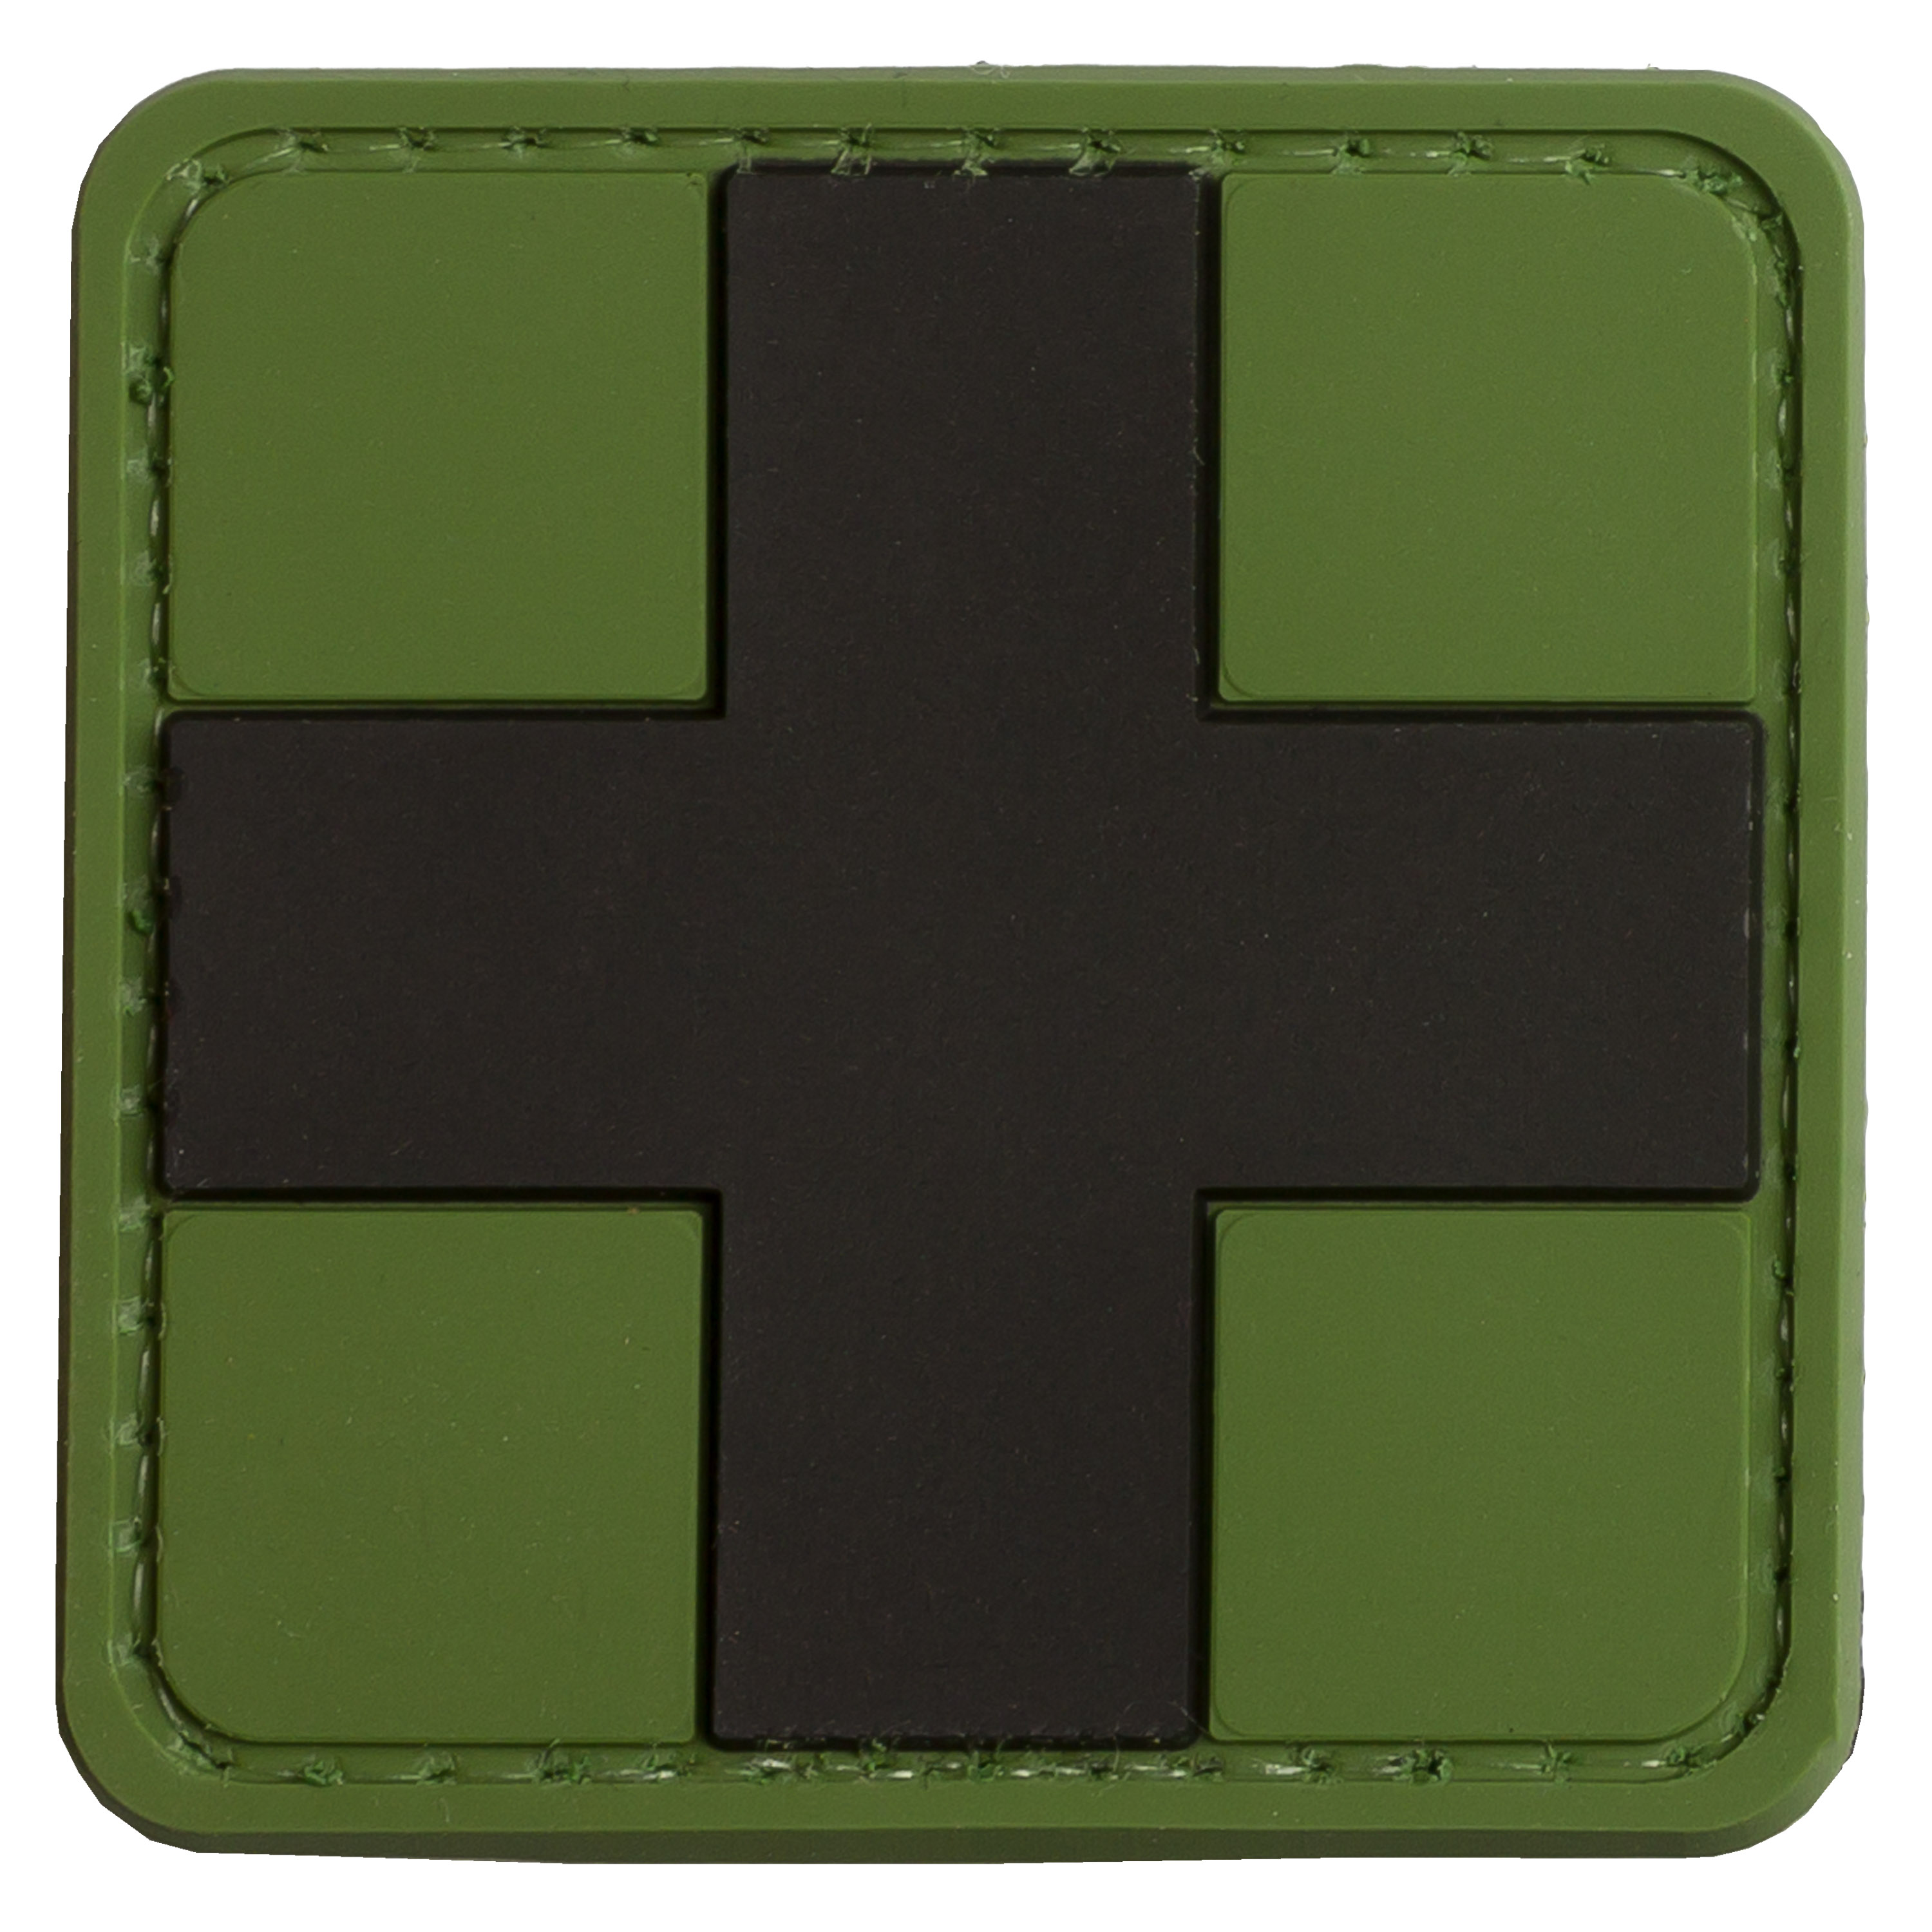 TAP 3D Patch Red Cross Medic oliv-schwarz